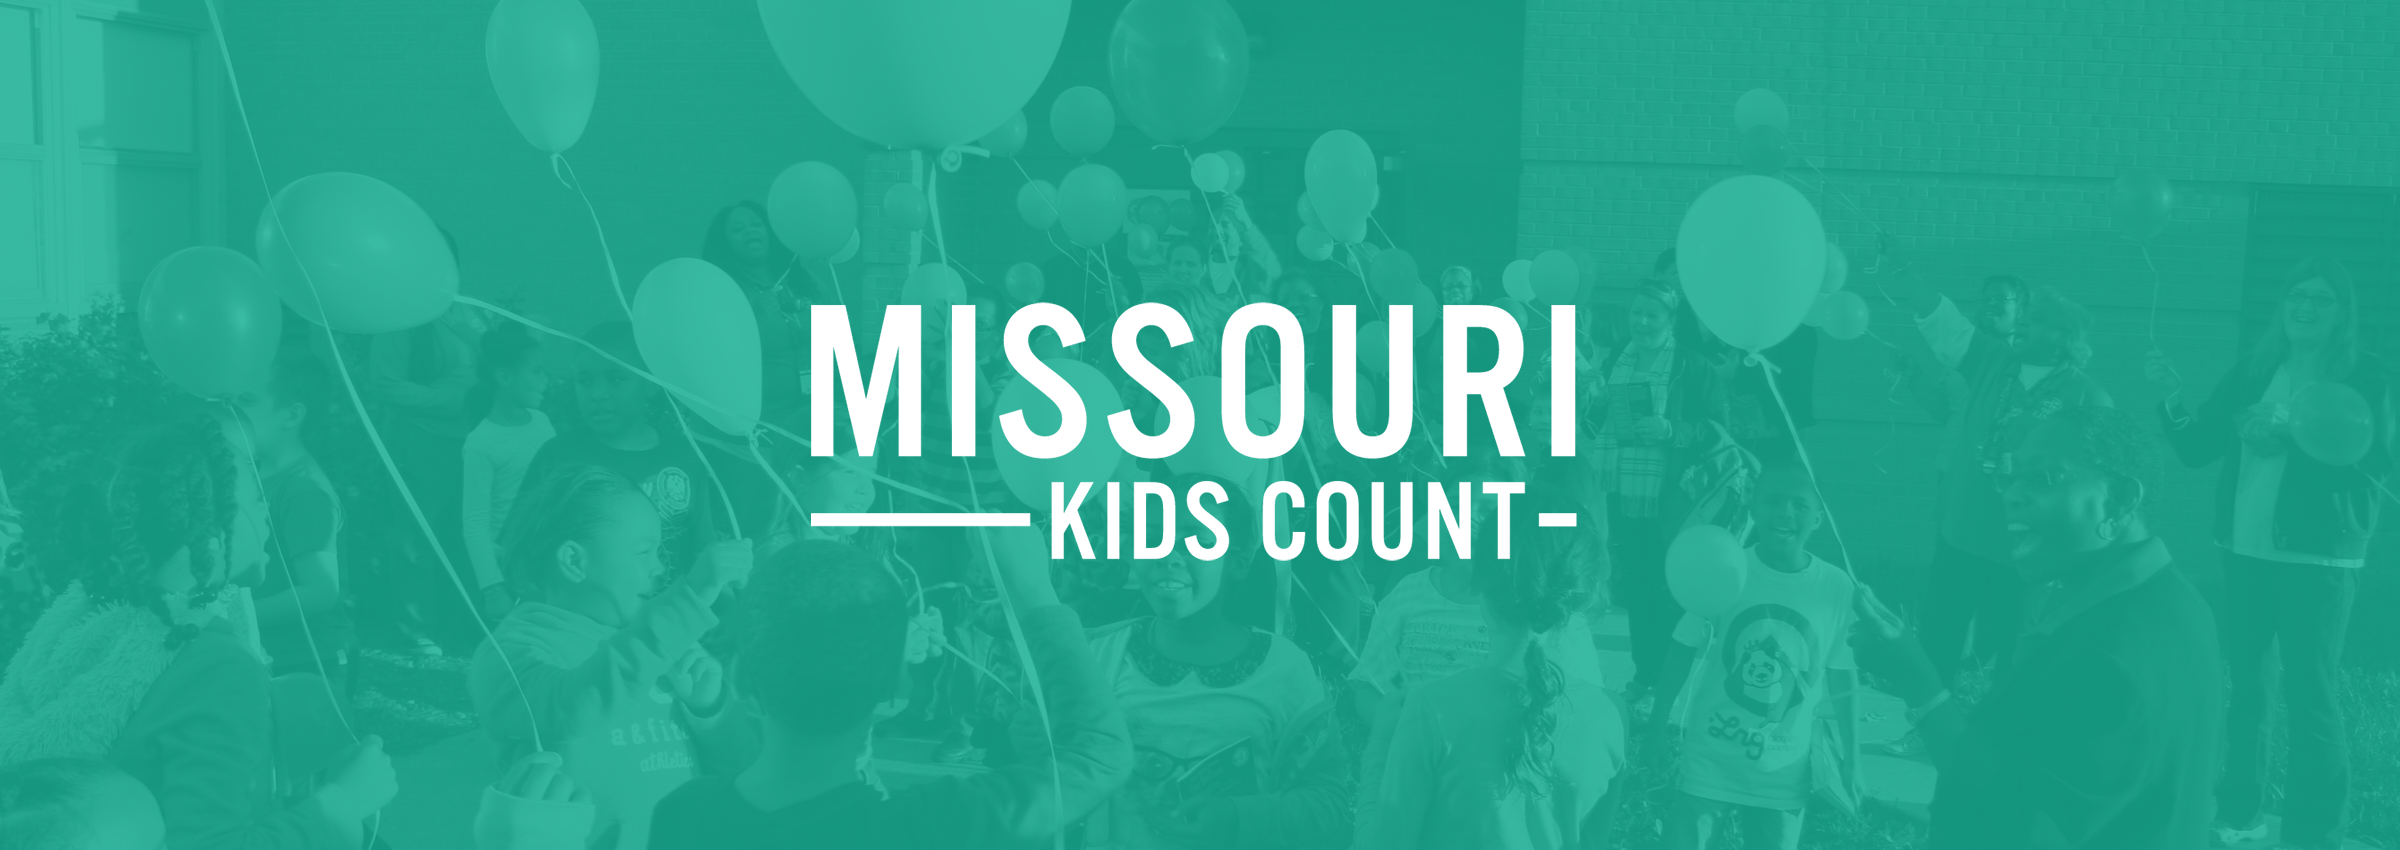 Missouri KIDS COUNT - Homepage Graphic